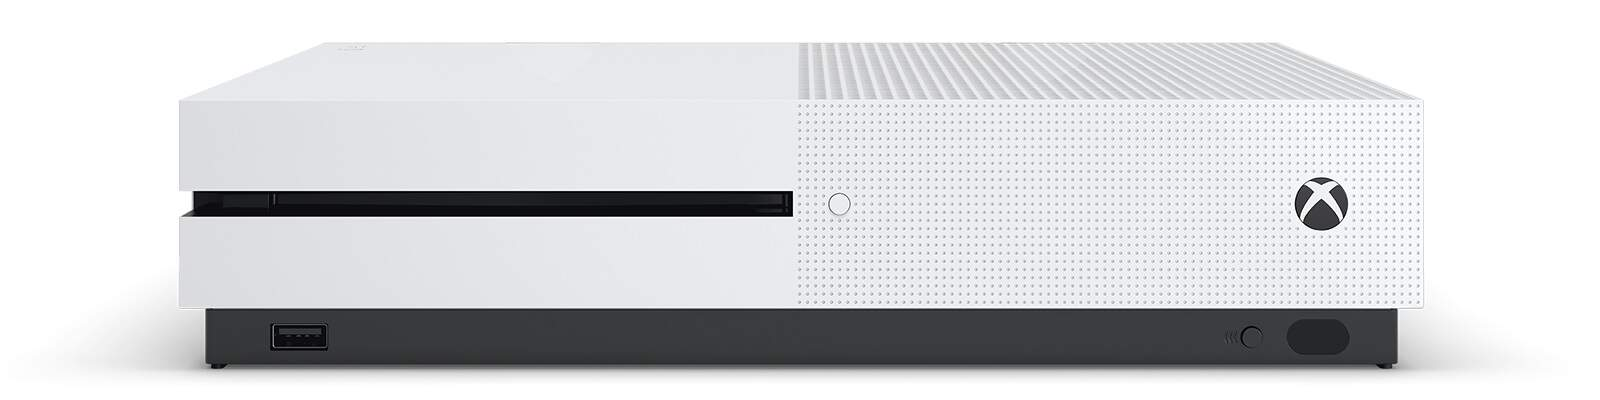 Xbox One S - 500GB Branco